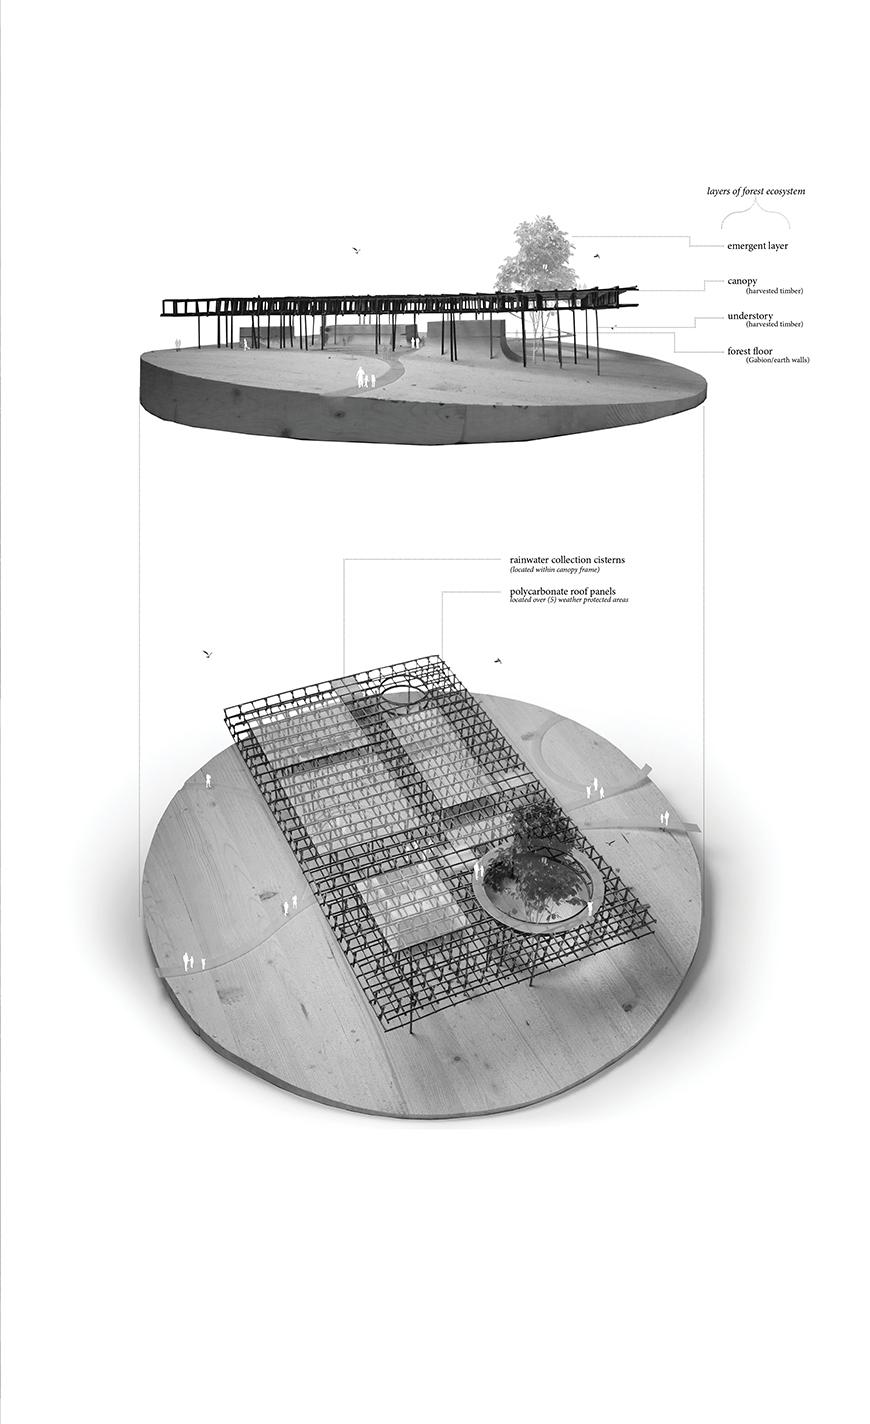 Two views of a circular model showing different views of a building